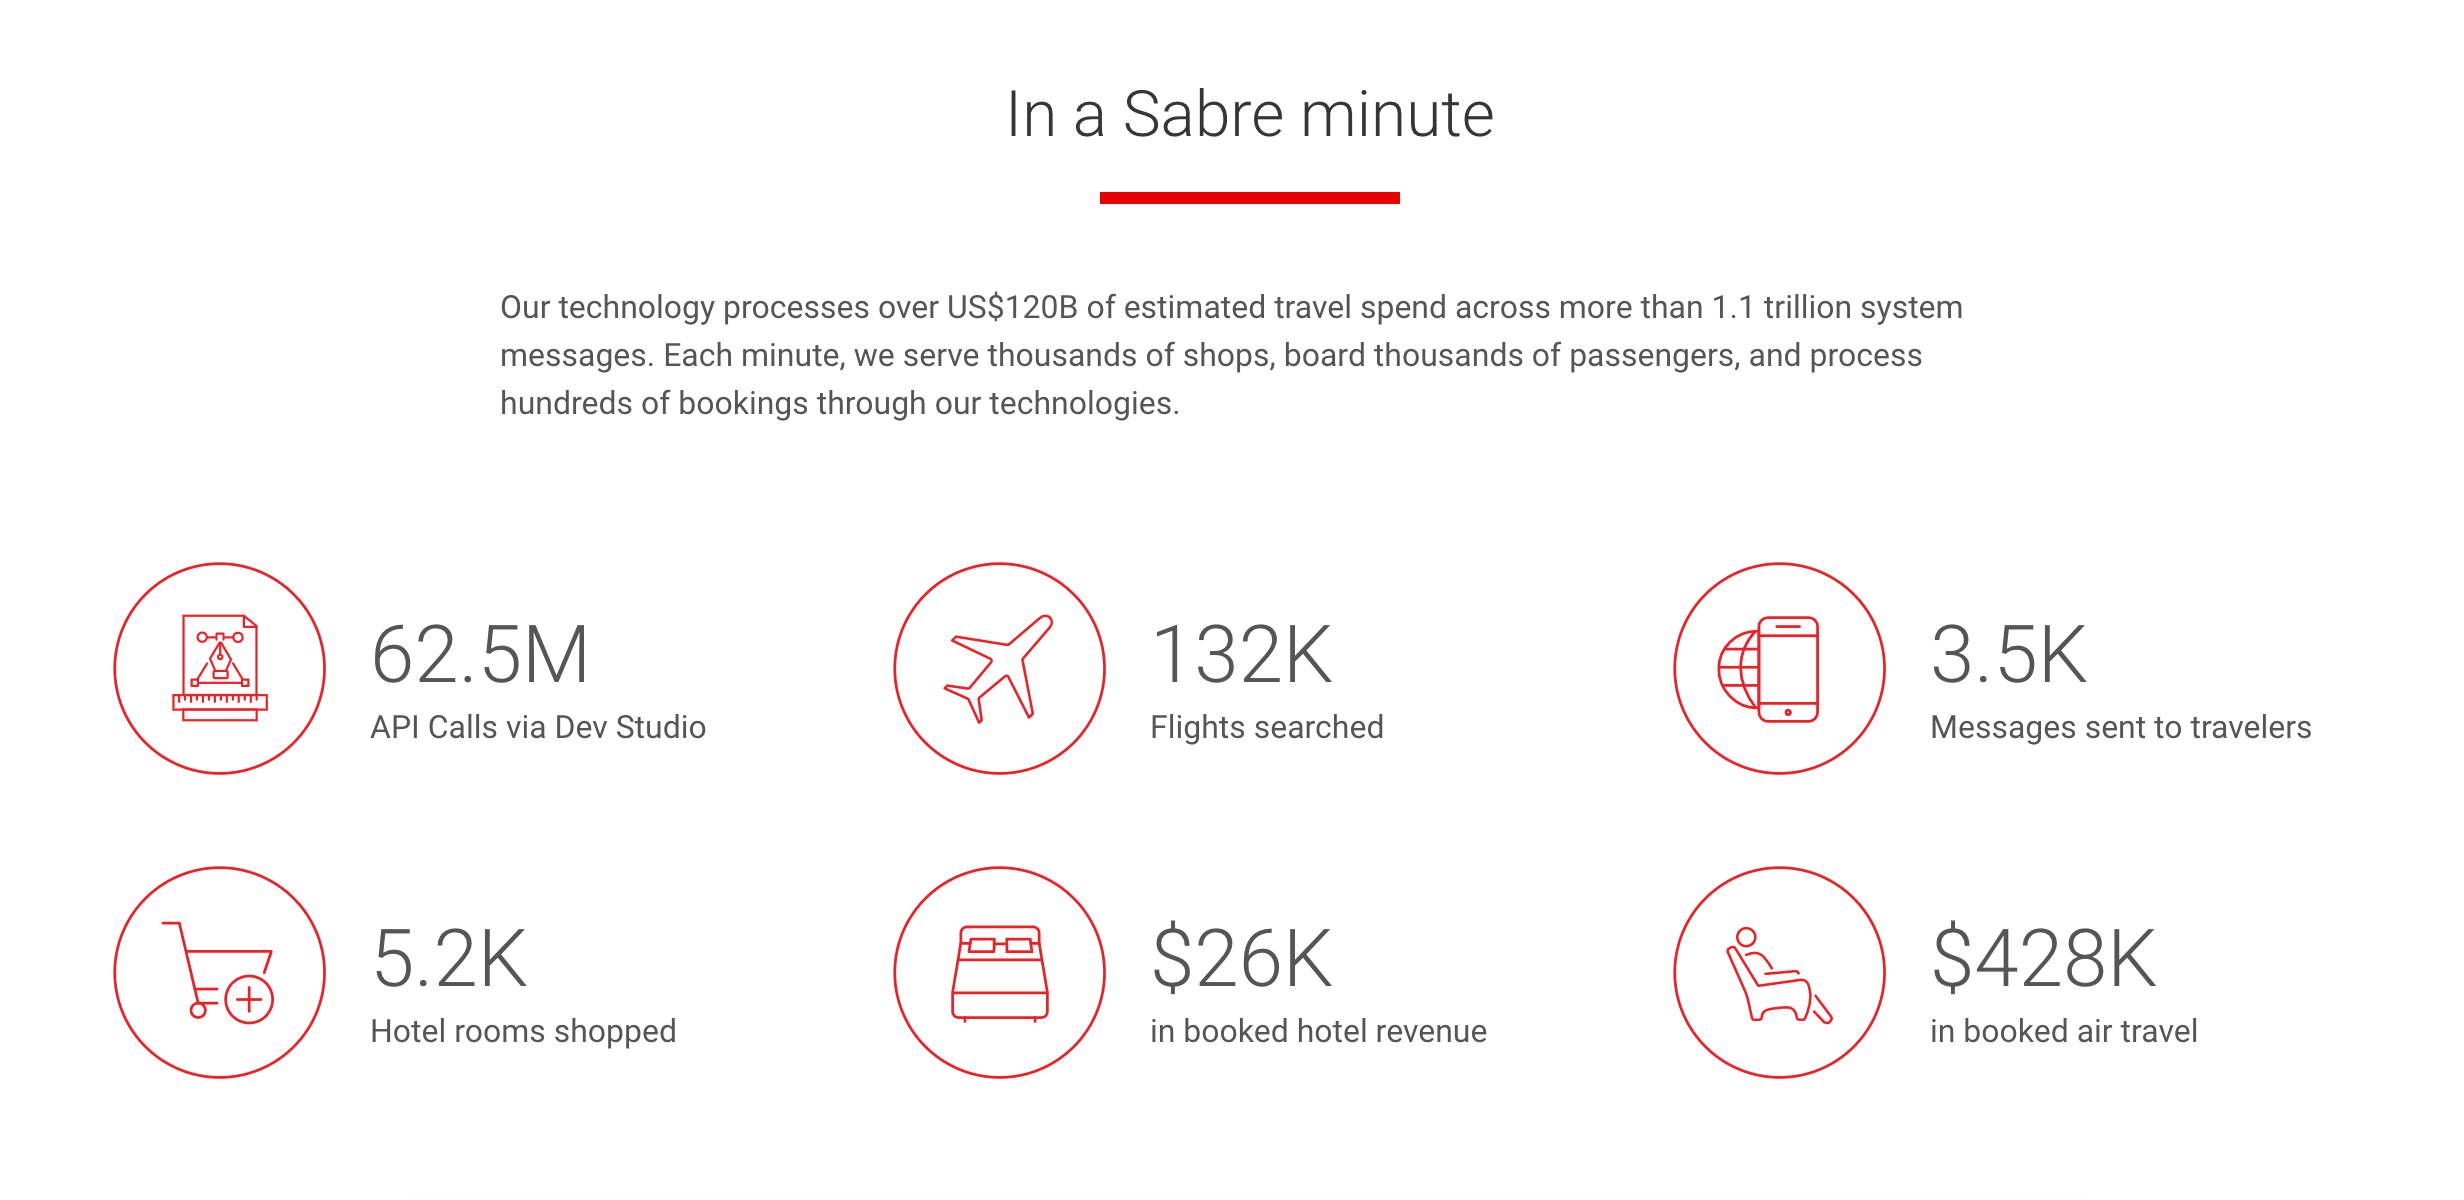 Sabre in a Minute